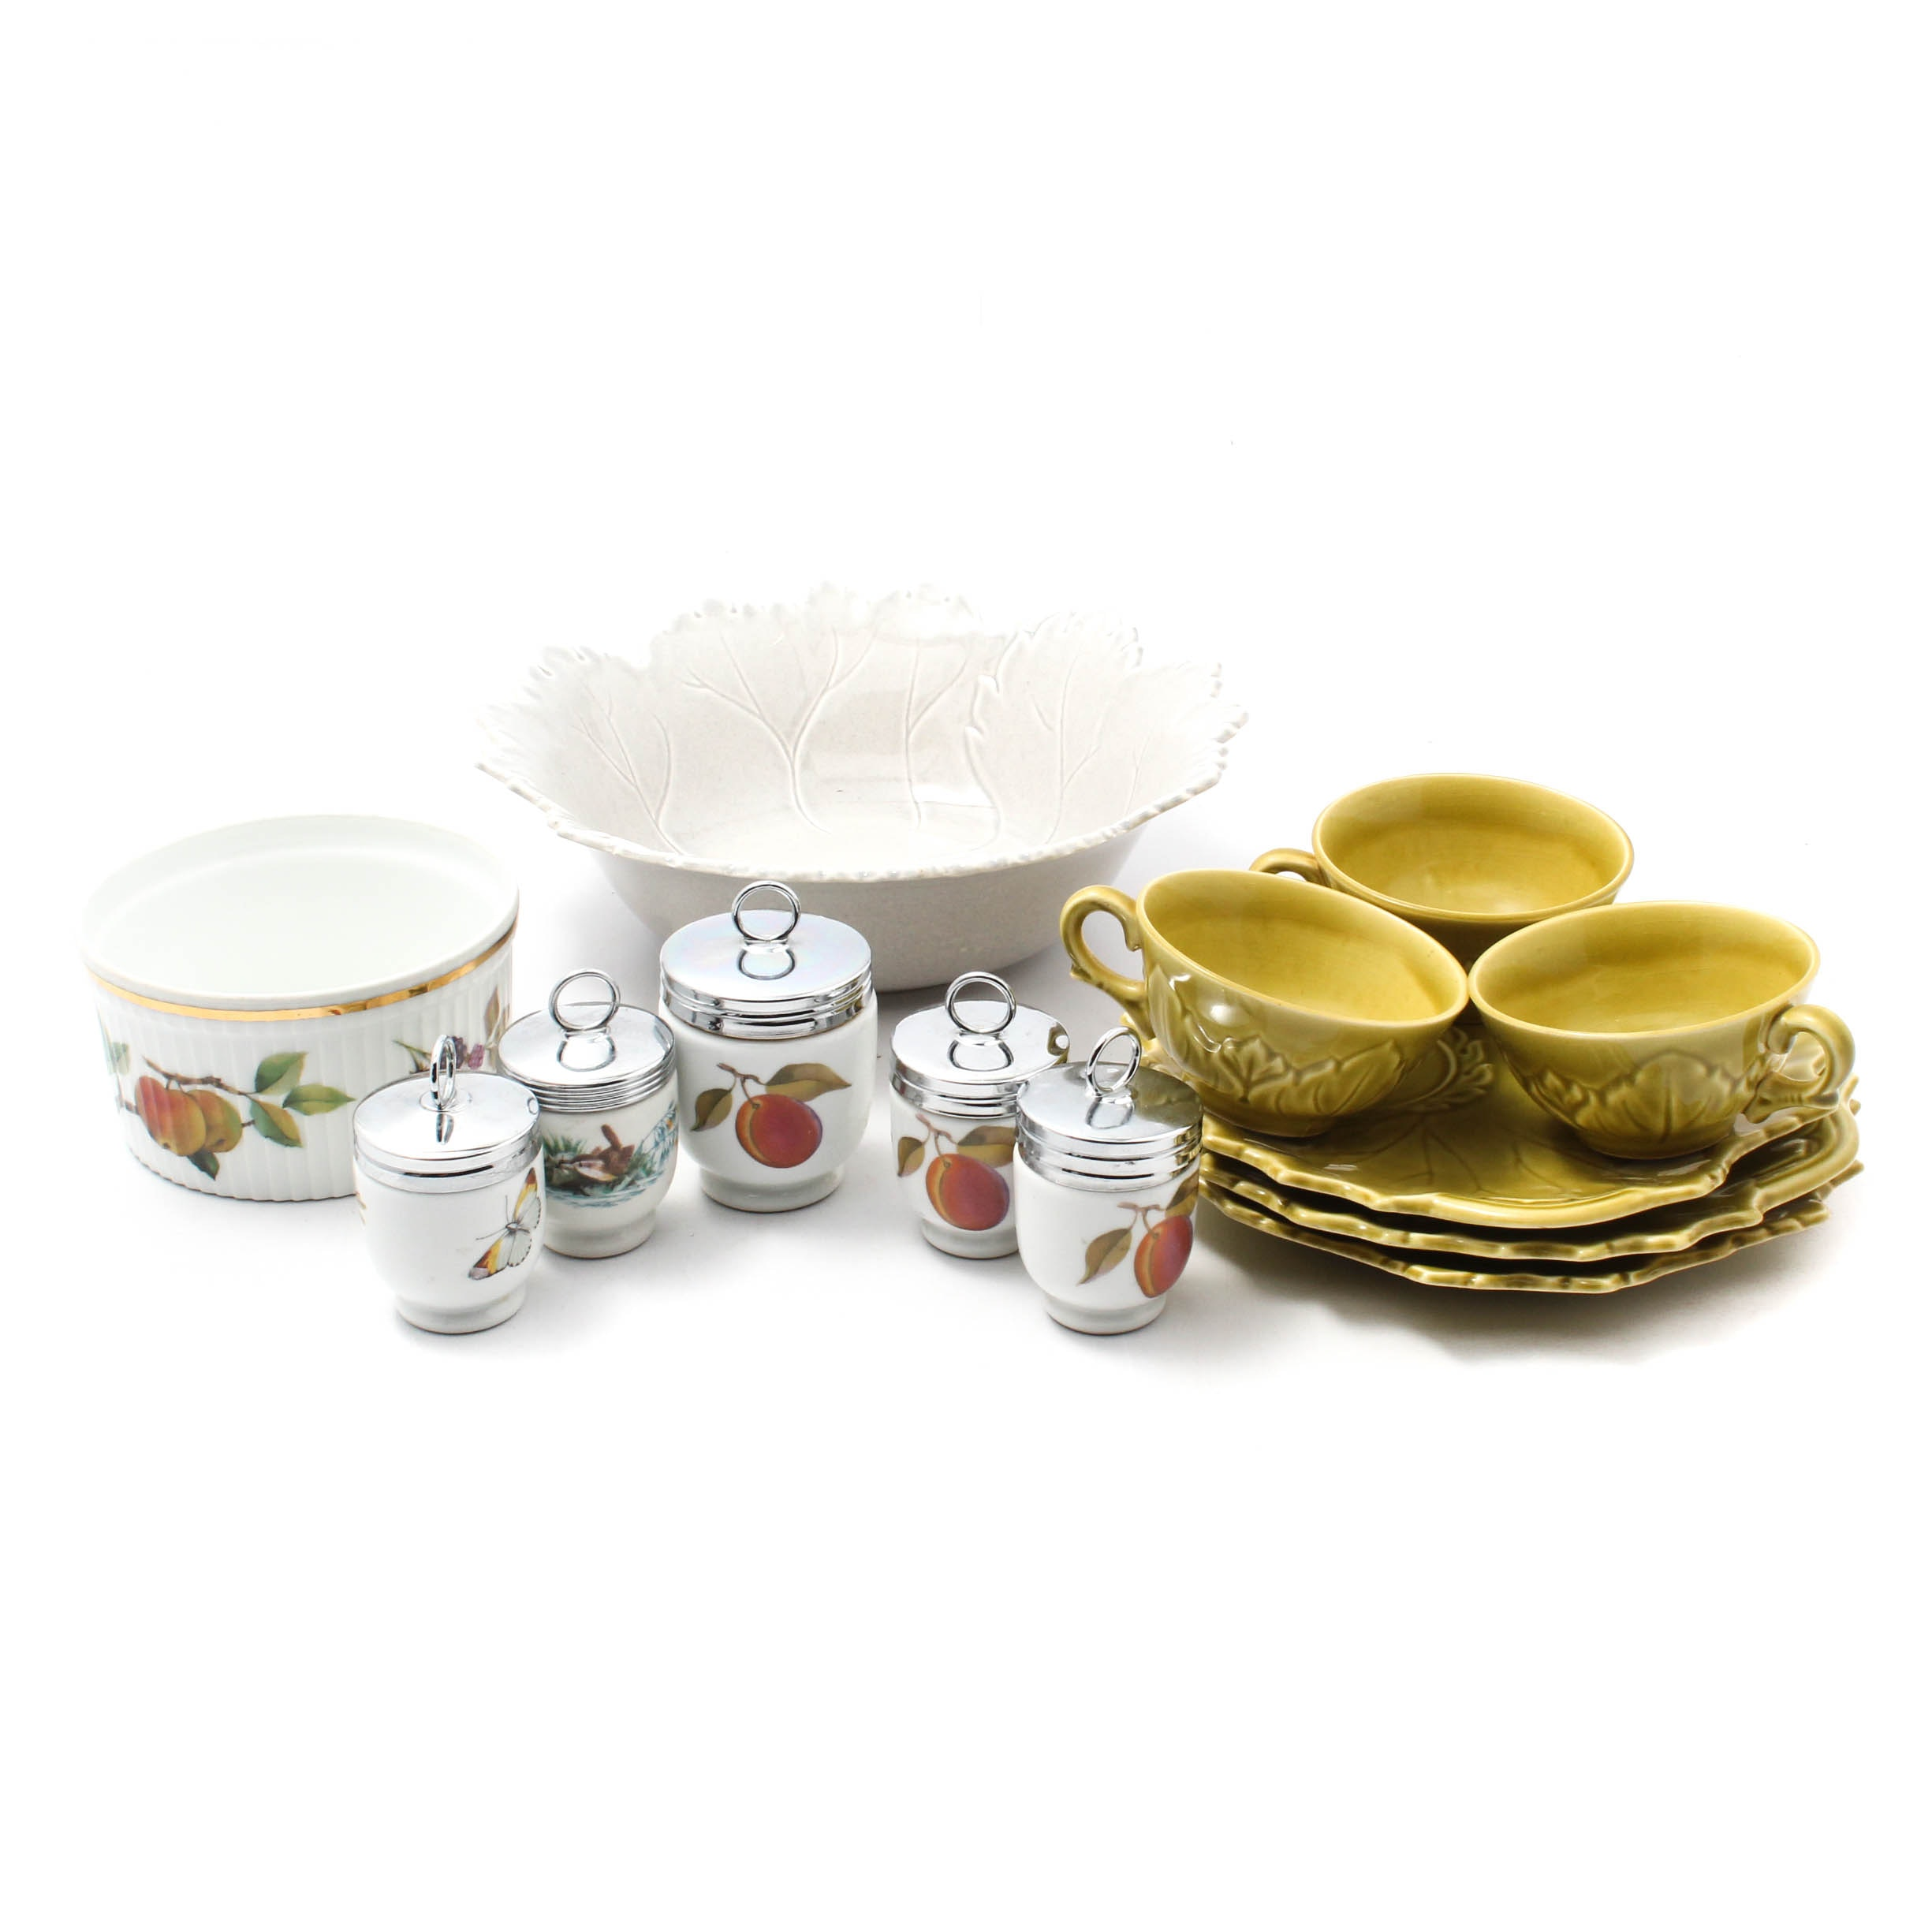 Tableware Featuring Royal Worcester and Steubenville